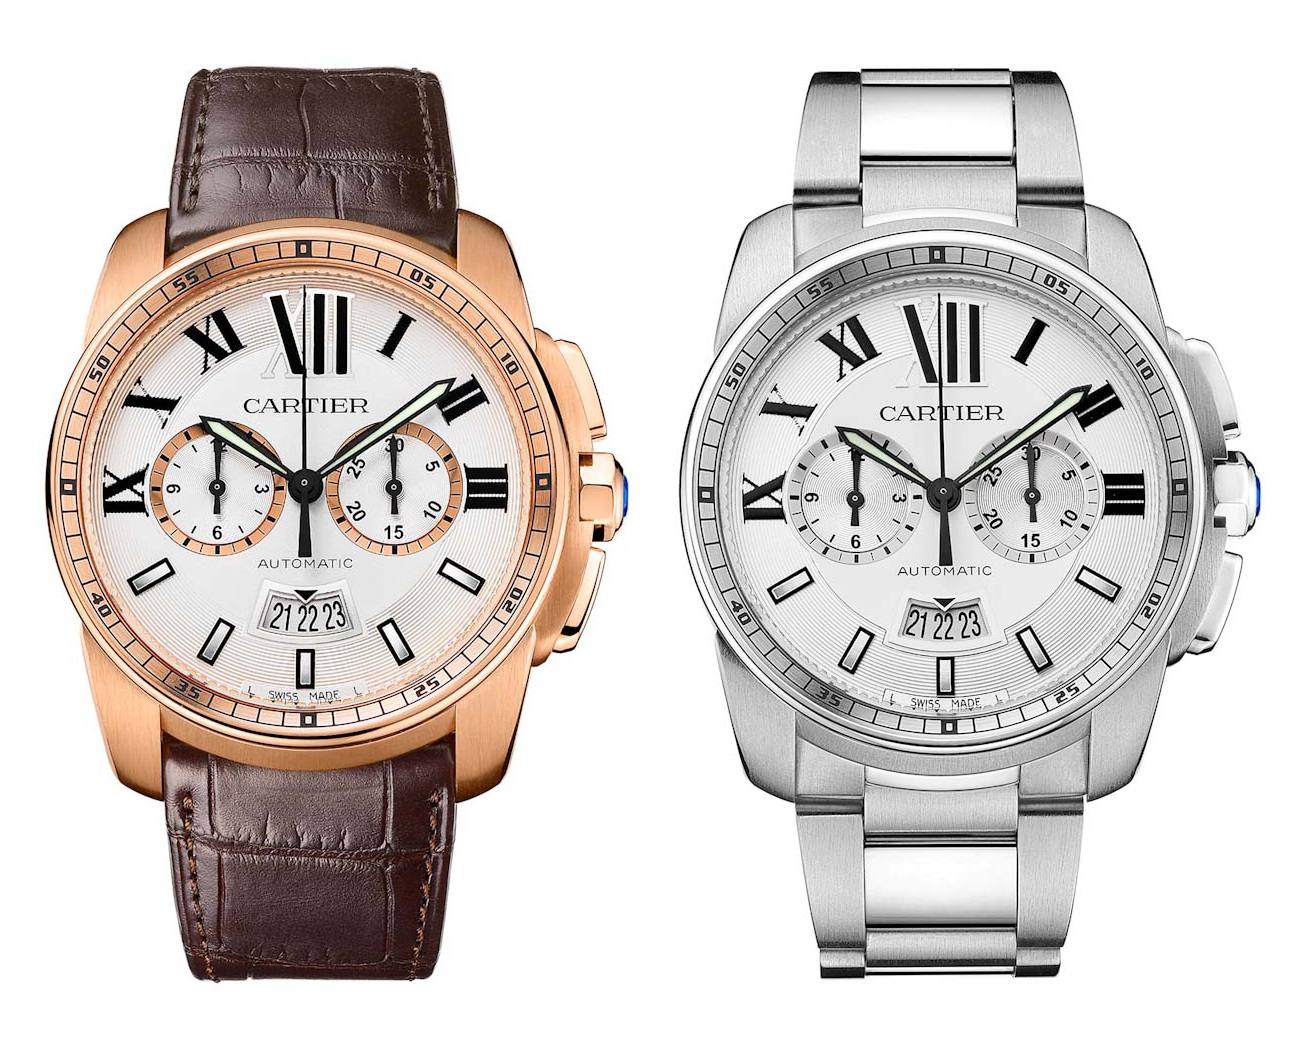 Two versions of the new Calibre chronograph.